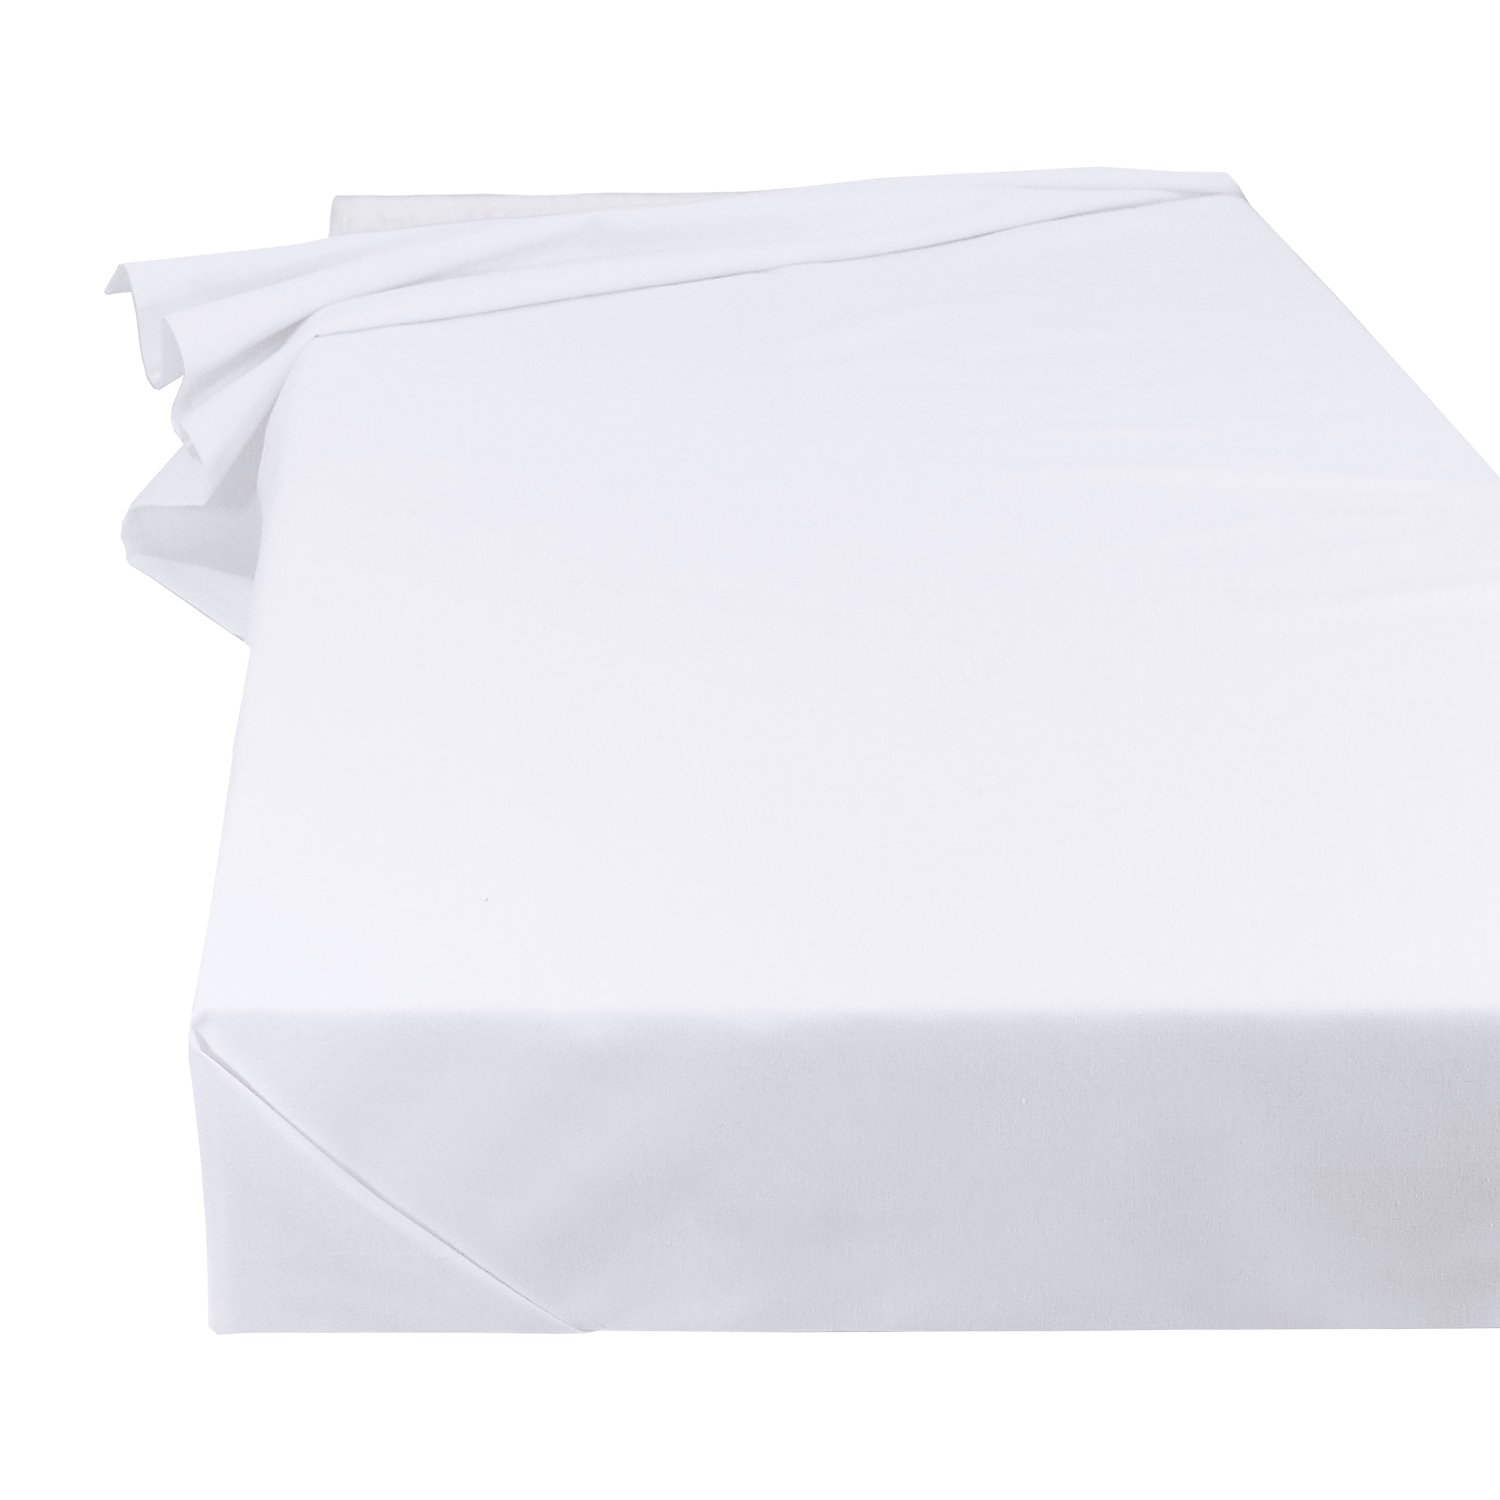 Bedsheet bedlinen household linen tablecloth in white, size 150 x 250 cm made from 100% cotton Green Mark Handels GmbH